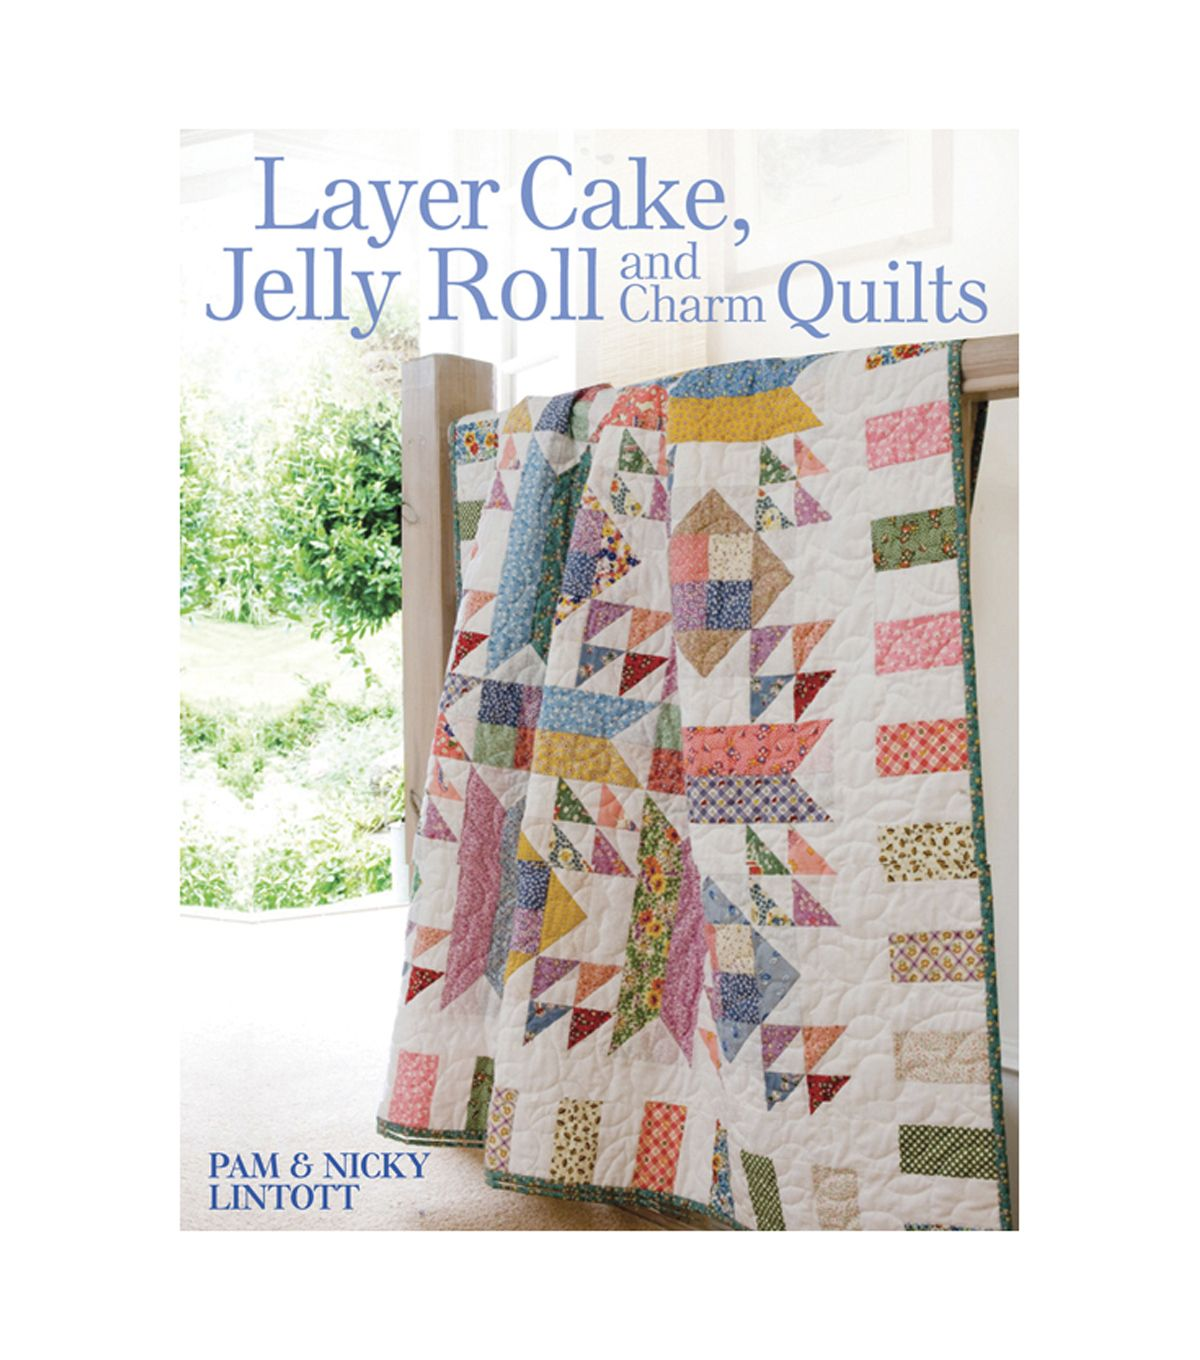 David & Charles Books - Layer Cake, Jelly Roll And Charm Quilts ... : discounted quilts - Adamdwight.com